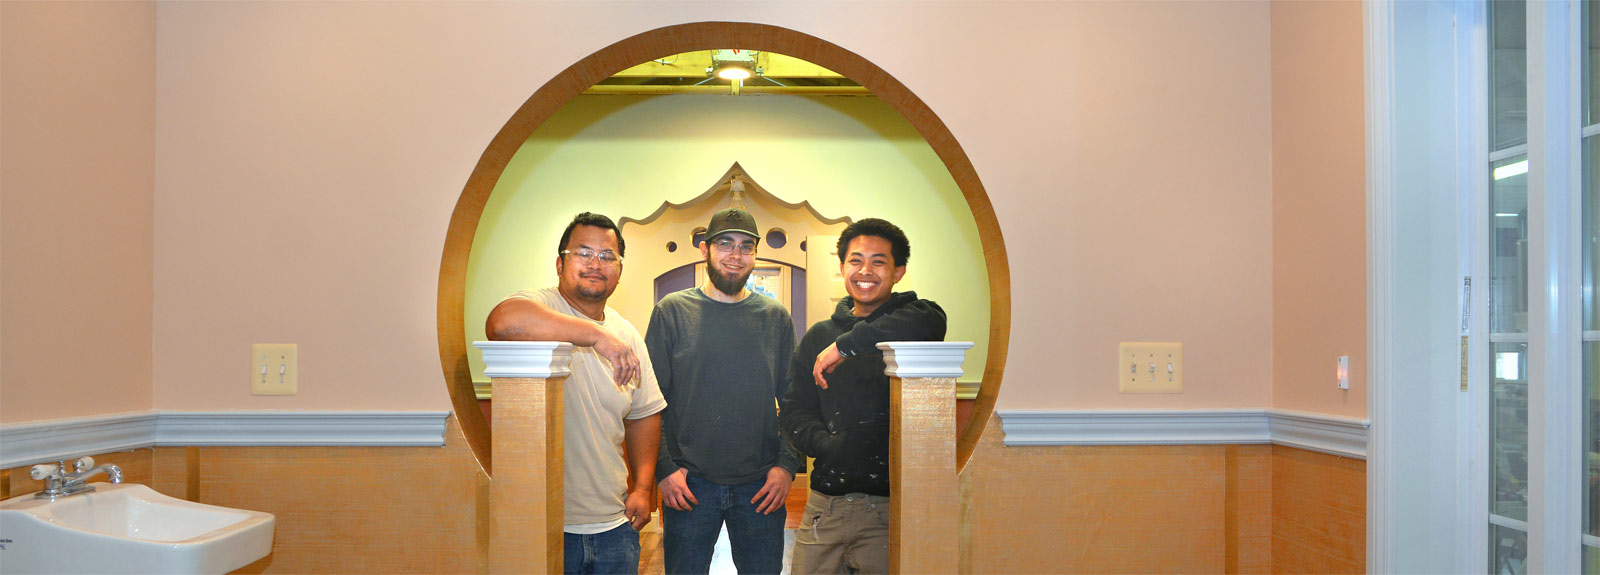 Three MTTI Building Trades Students Standing Under The Archway They Designed & Constructed.